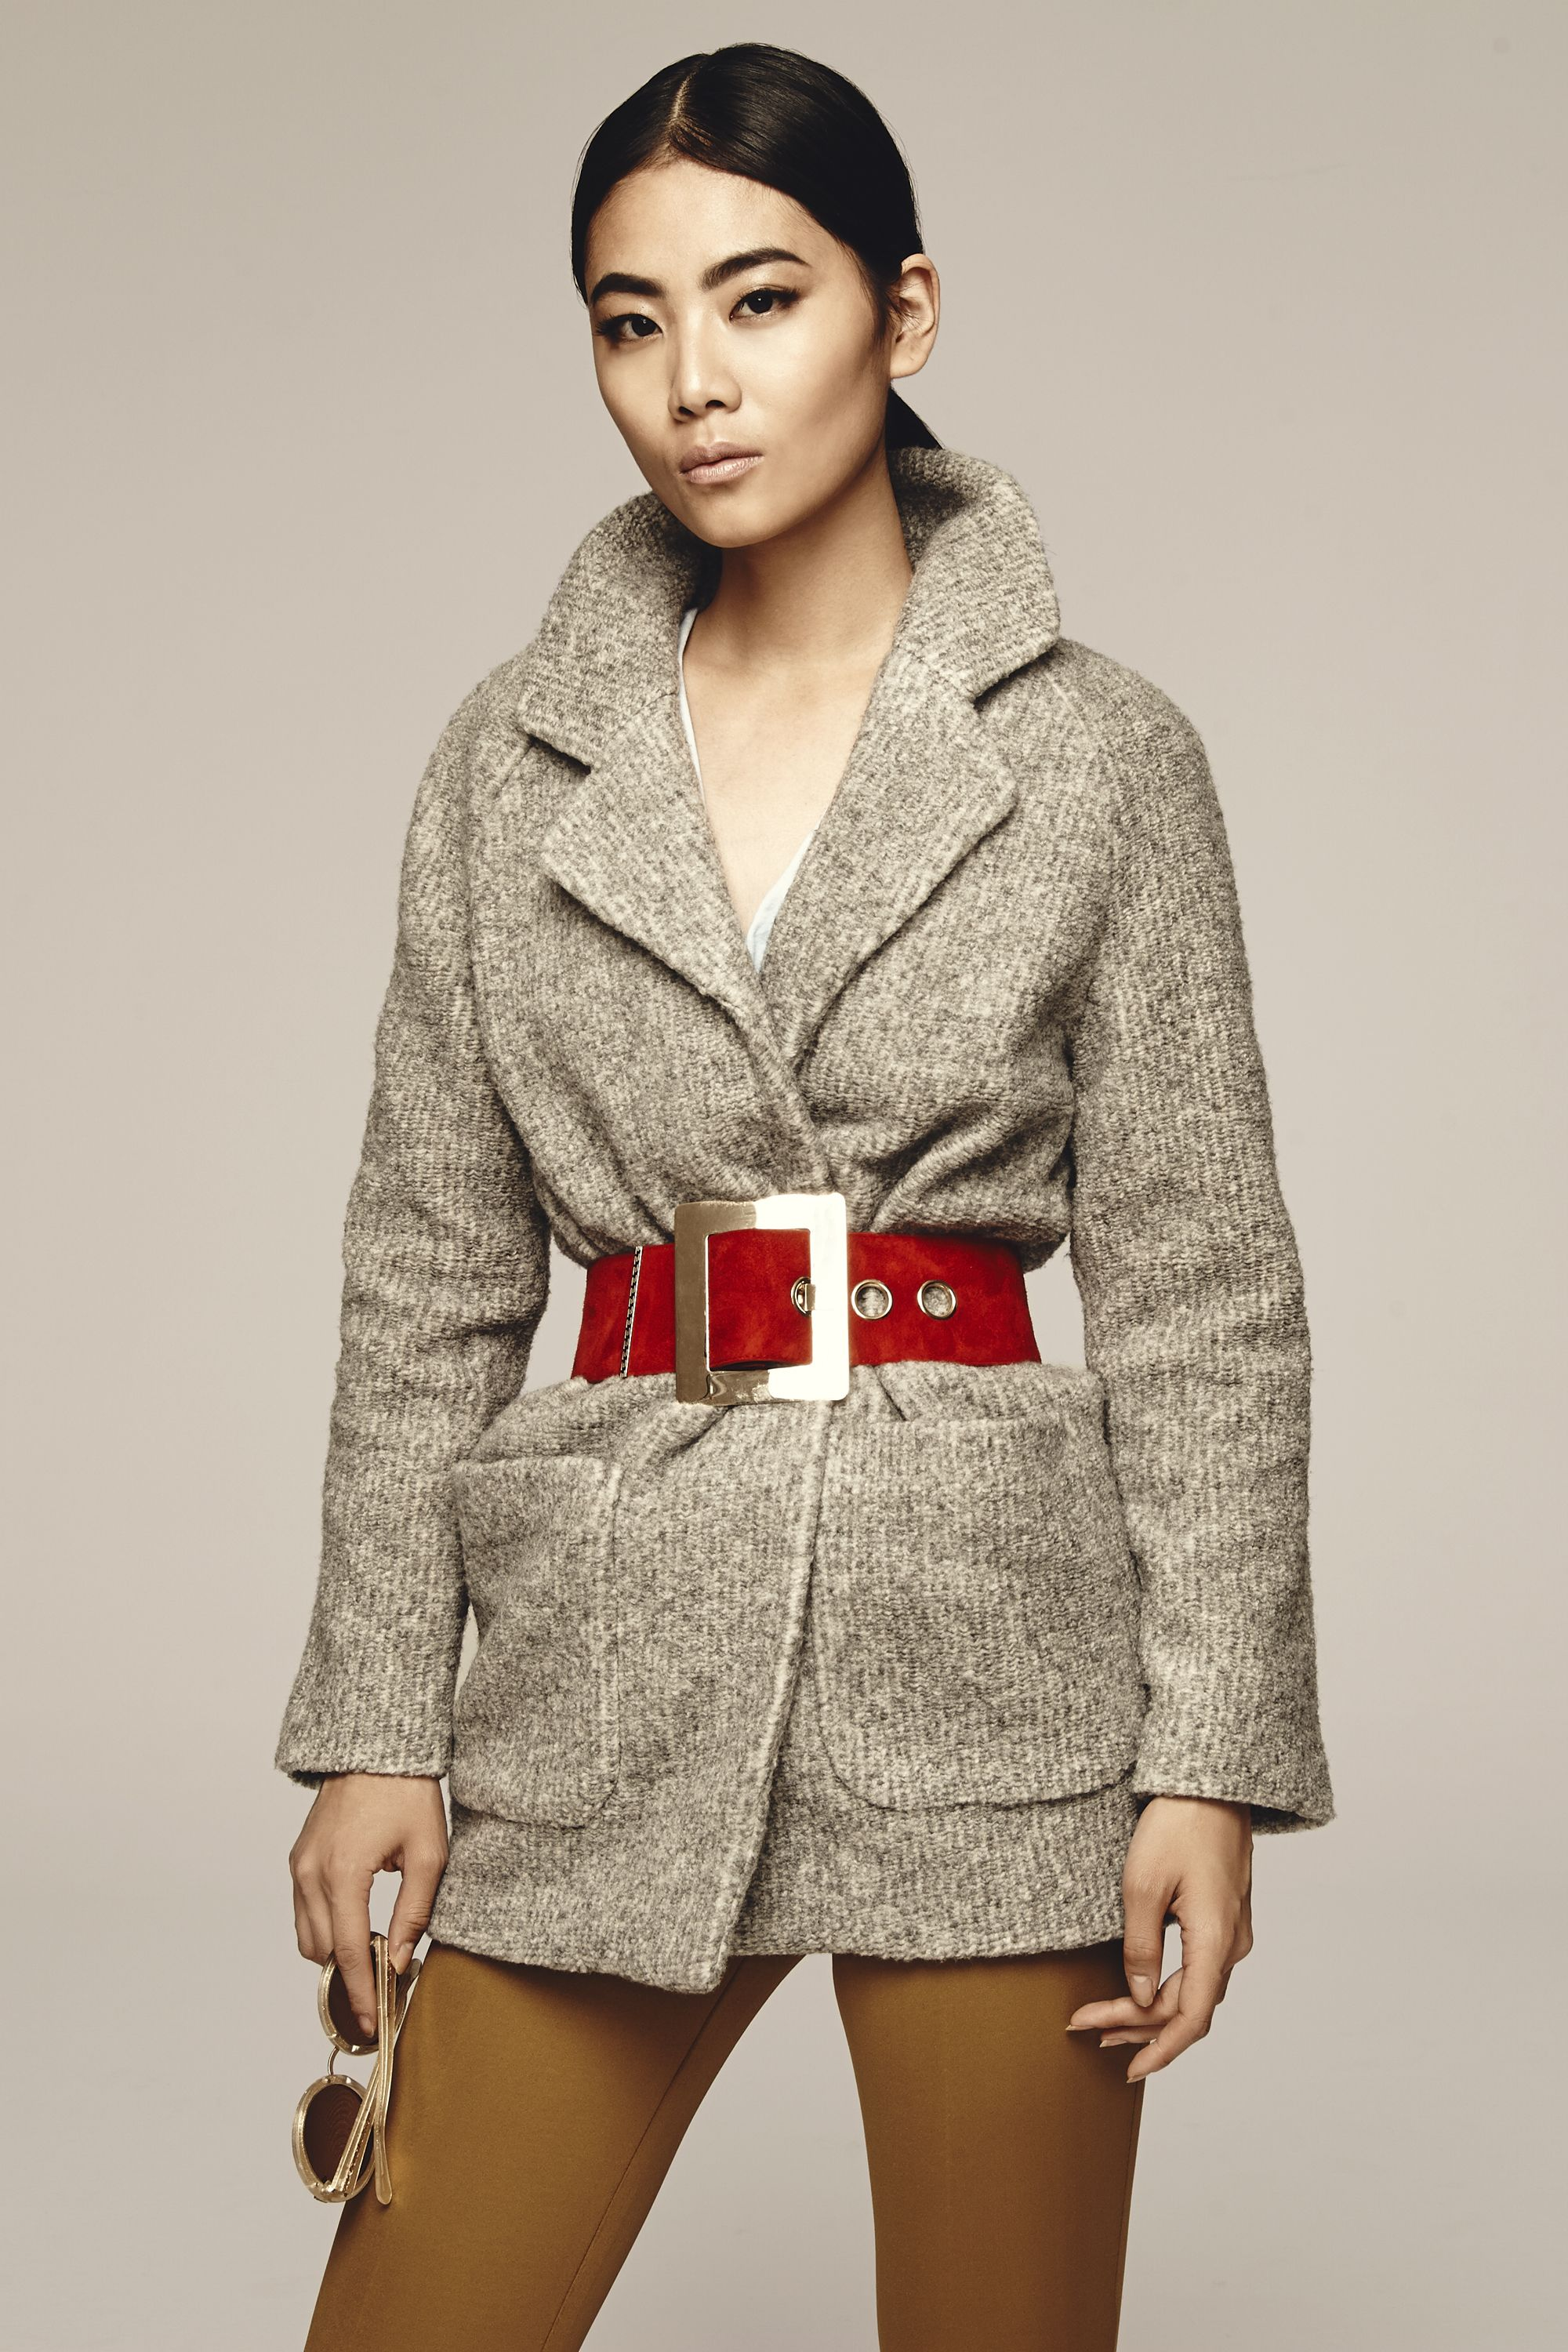 """<p>Make a boxy coat feel more feminine by tucking one side into the other, and cinching it at the waist with a bold-colored belt (with a decidedly oversize buckle). It'll give bundled-up you a much sexier silhouette.</p><p>Old Navy Textured Cocoon Coat, $75, <a href=""""http://oldnavy.gap.com/browse/category.do?cid=55474"""" target=""""_blank"""">oldnavy.com</a>; Prada Double Jersey Pants, $940, <a href=""""http://www.prada.com/en.html?cc=US"""" target=""""_blank"""">prada.com</a>; Old Navy Classic Oxford Shirt, $25, <a href=""""https://ad.doubleclick.net/ddm/clk/296862302;123822728;i"""" target=""""_blank"""">oldnavy.com</a>; Versace Suede Belt, $783, <a href=""""http://www.matchesfashion.com/us/products/1025995?country=USA&LGWCODE=1025995000003;104033;6167&qxjkl=tsid:15858